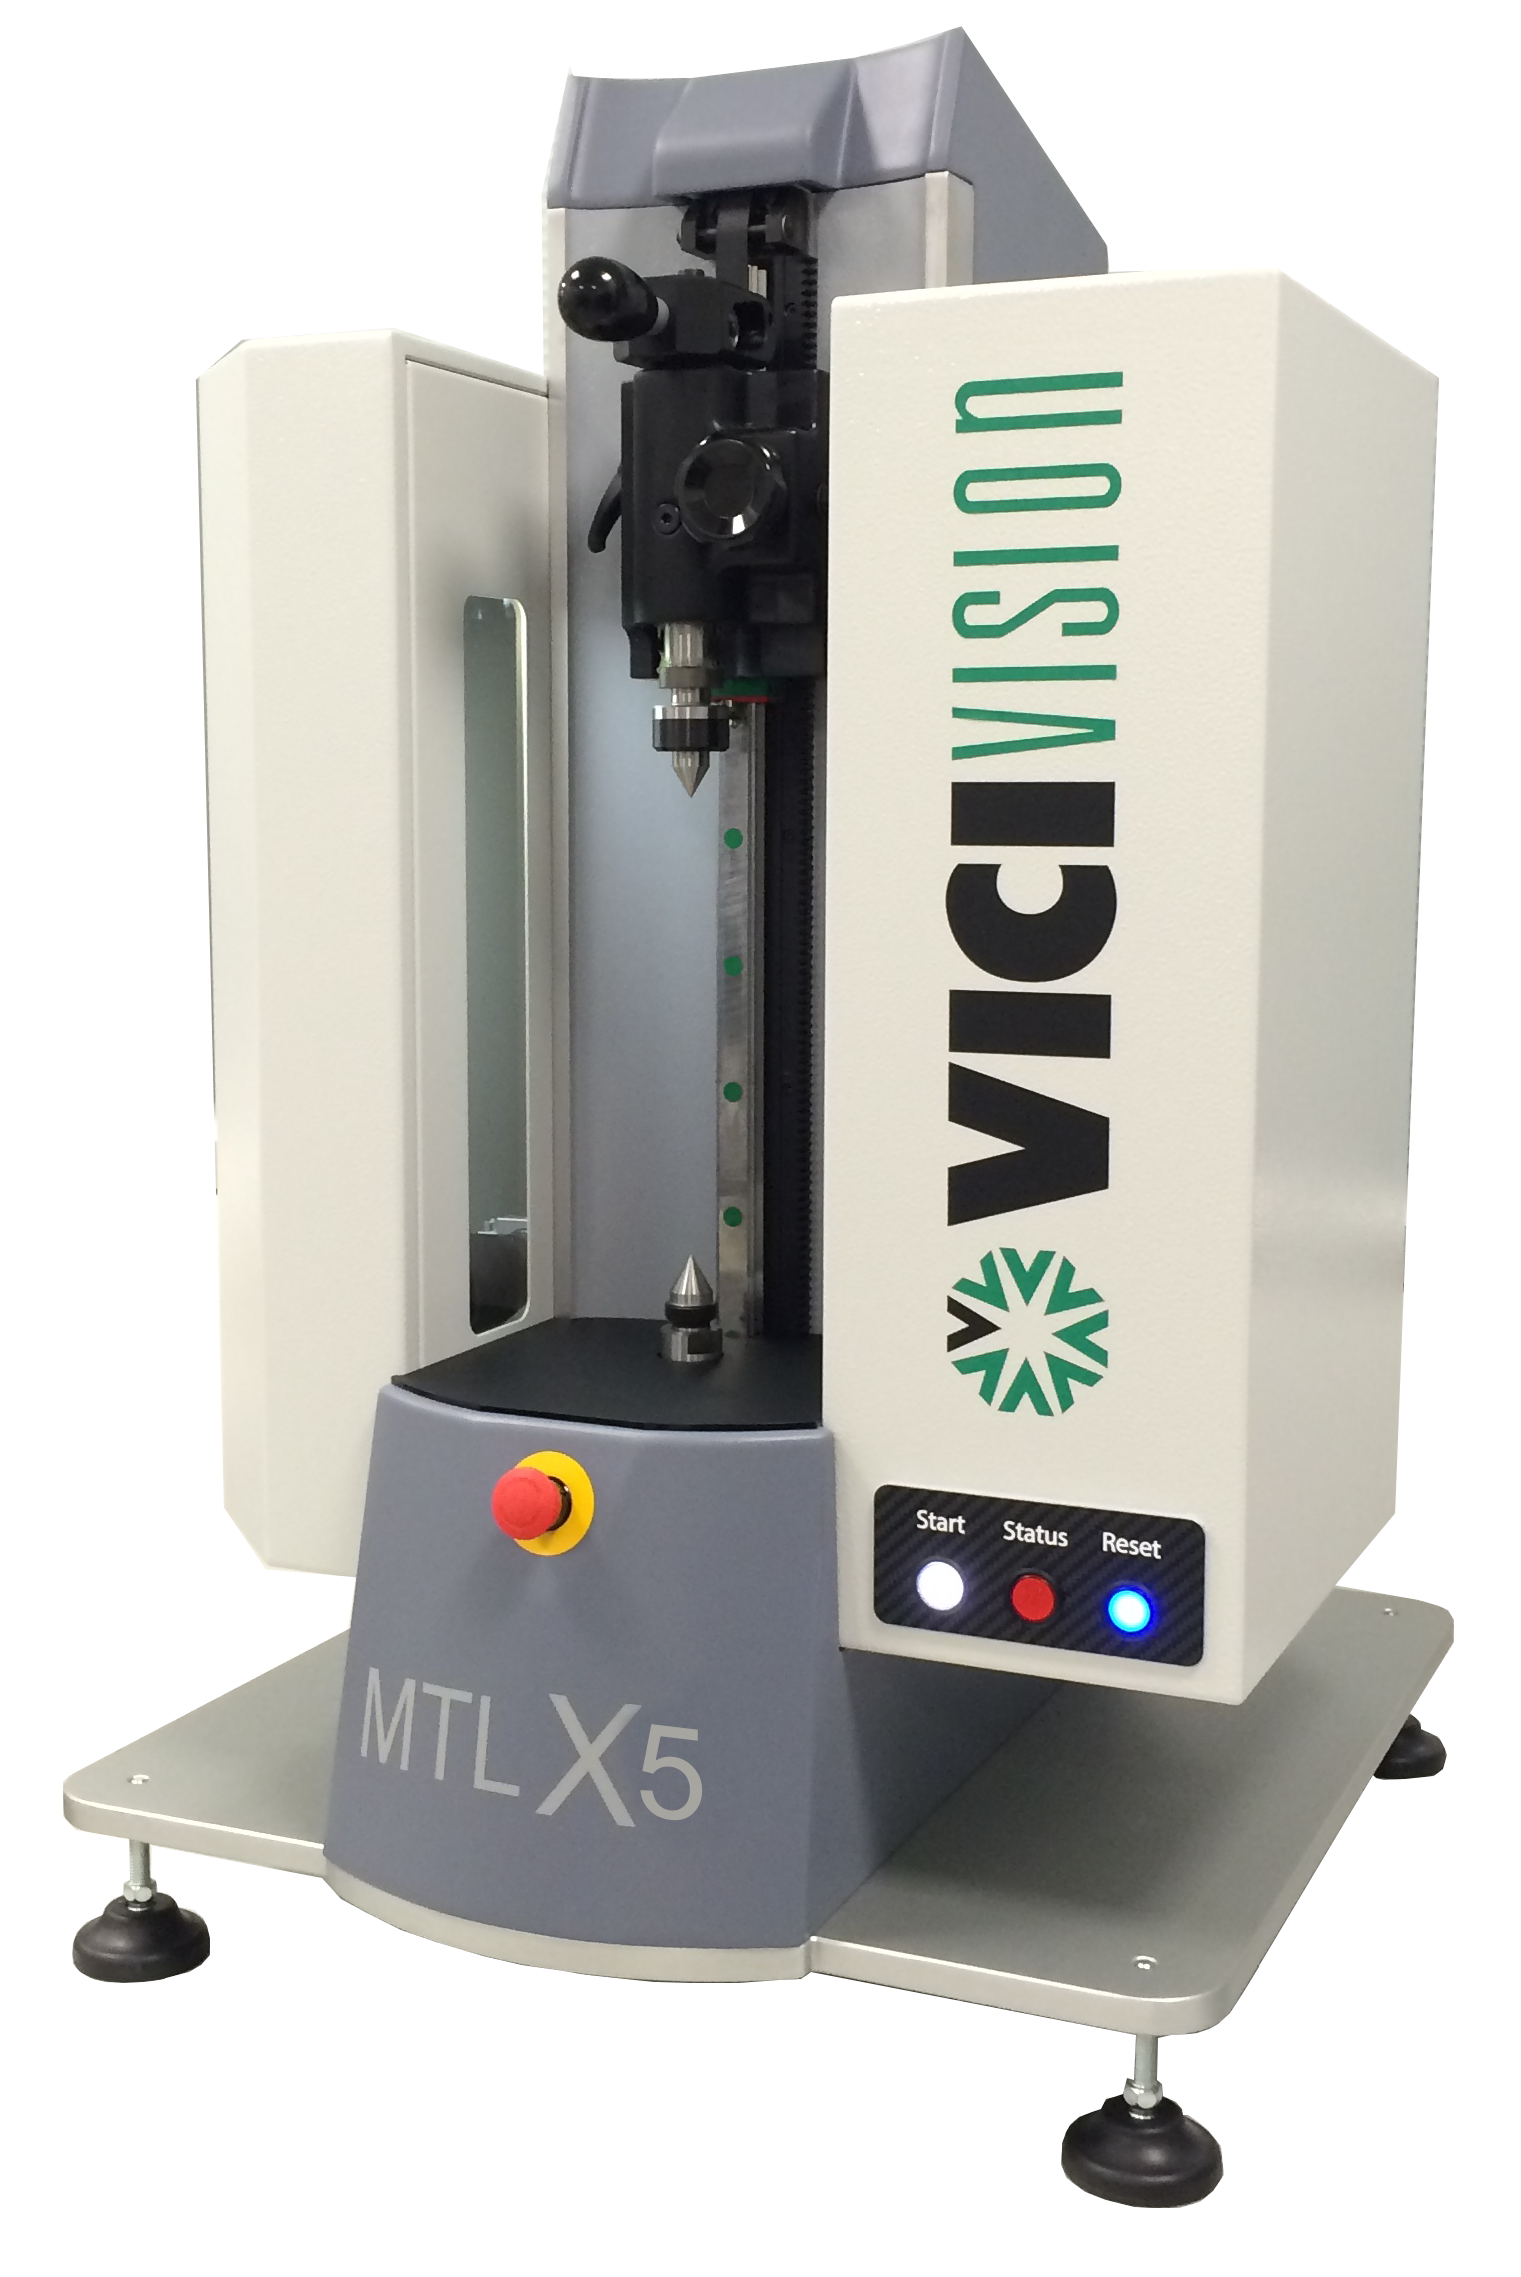 x5 series (specialized for miniature parts ex. dental implants)